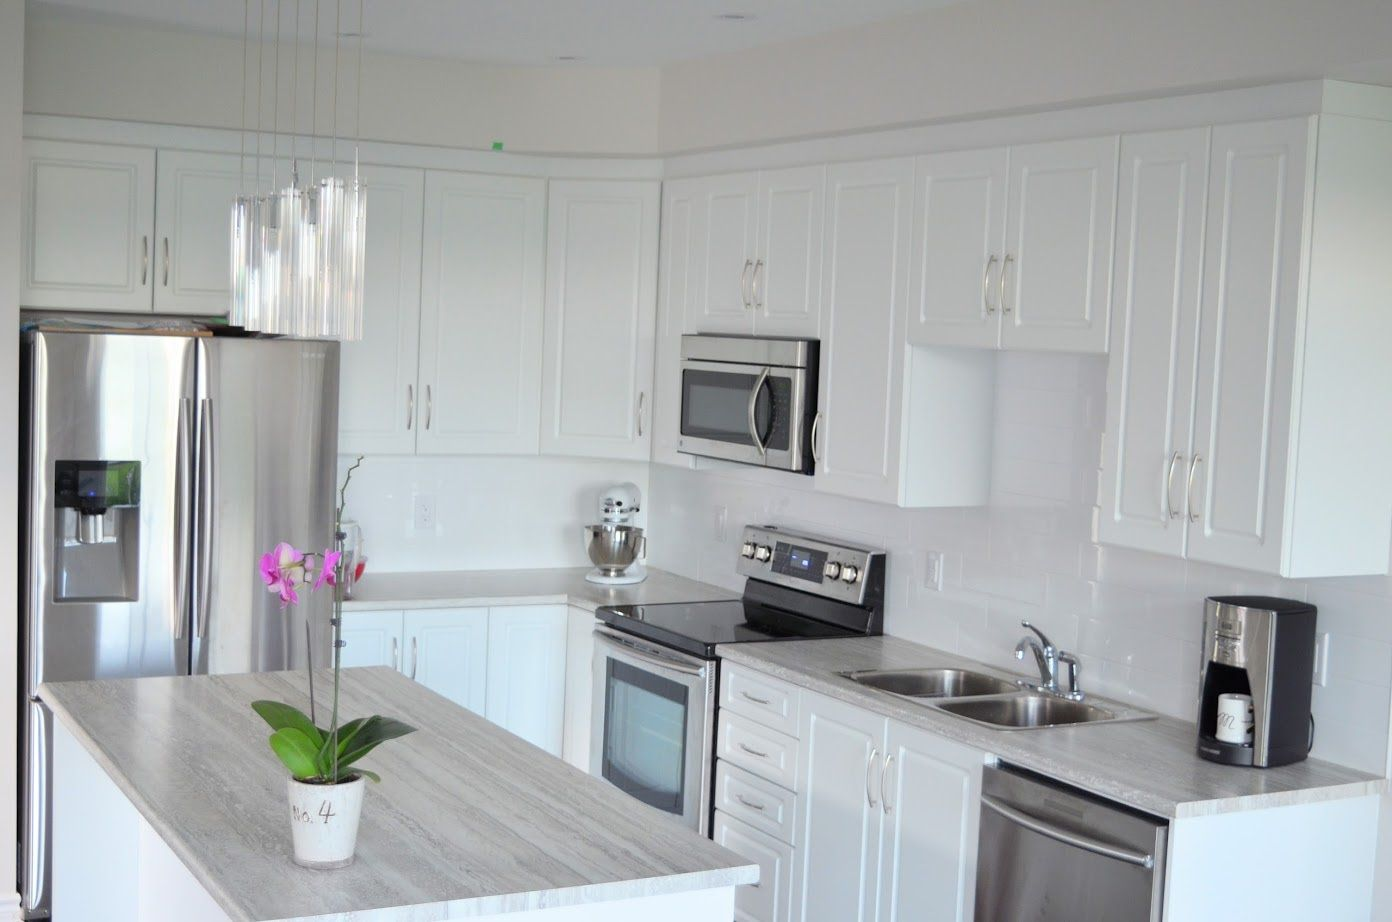 Download Wallpaper How To Clean White Kitchen Laminate